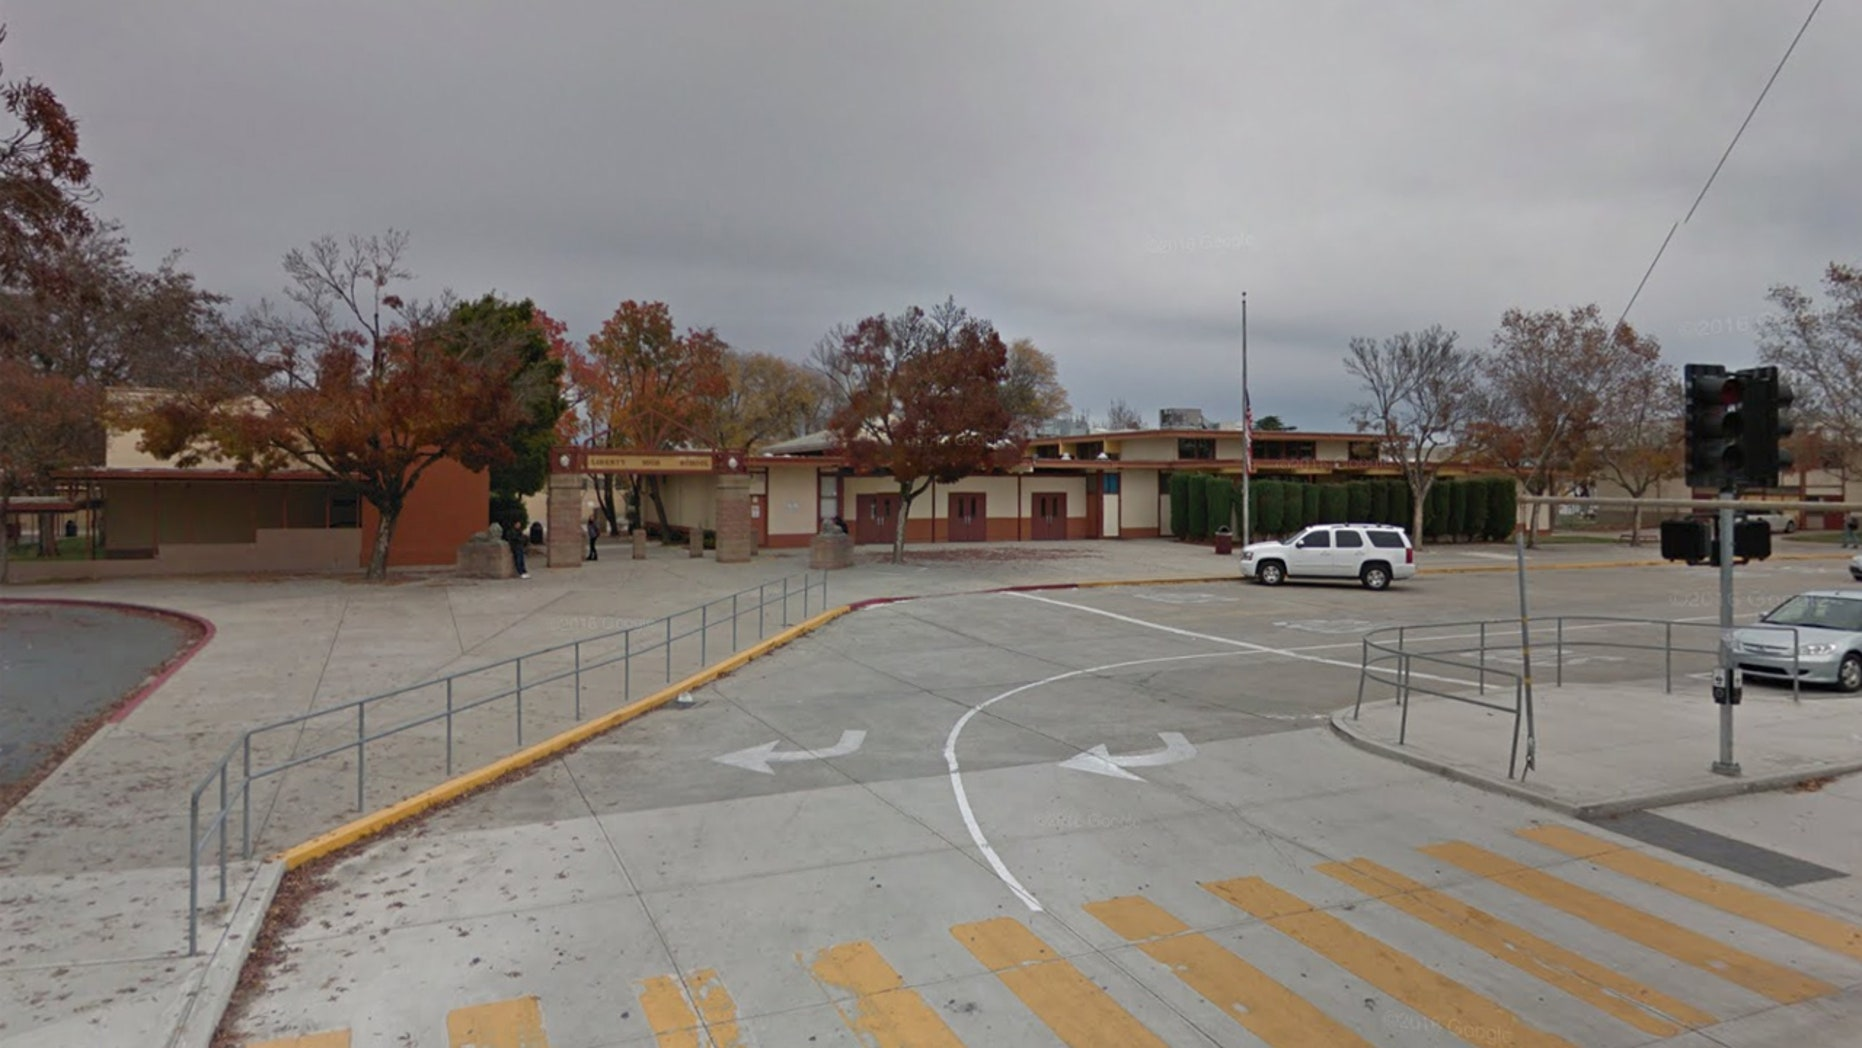 Liberty Union High School in Brentwood, California.